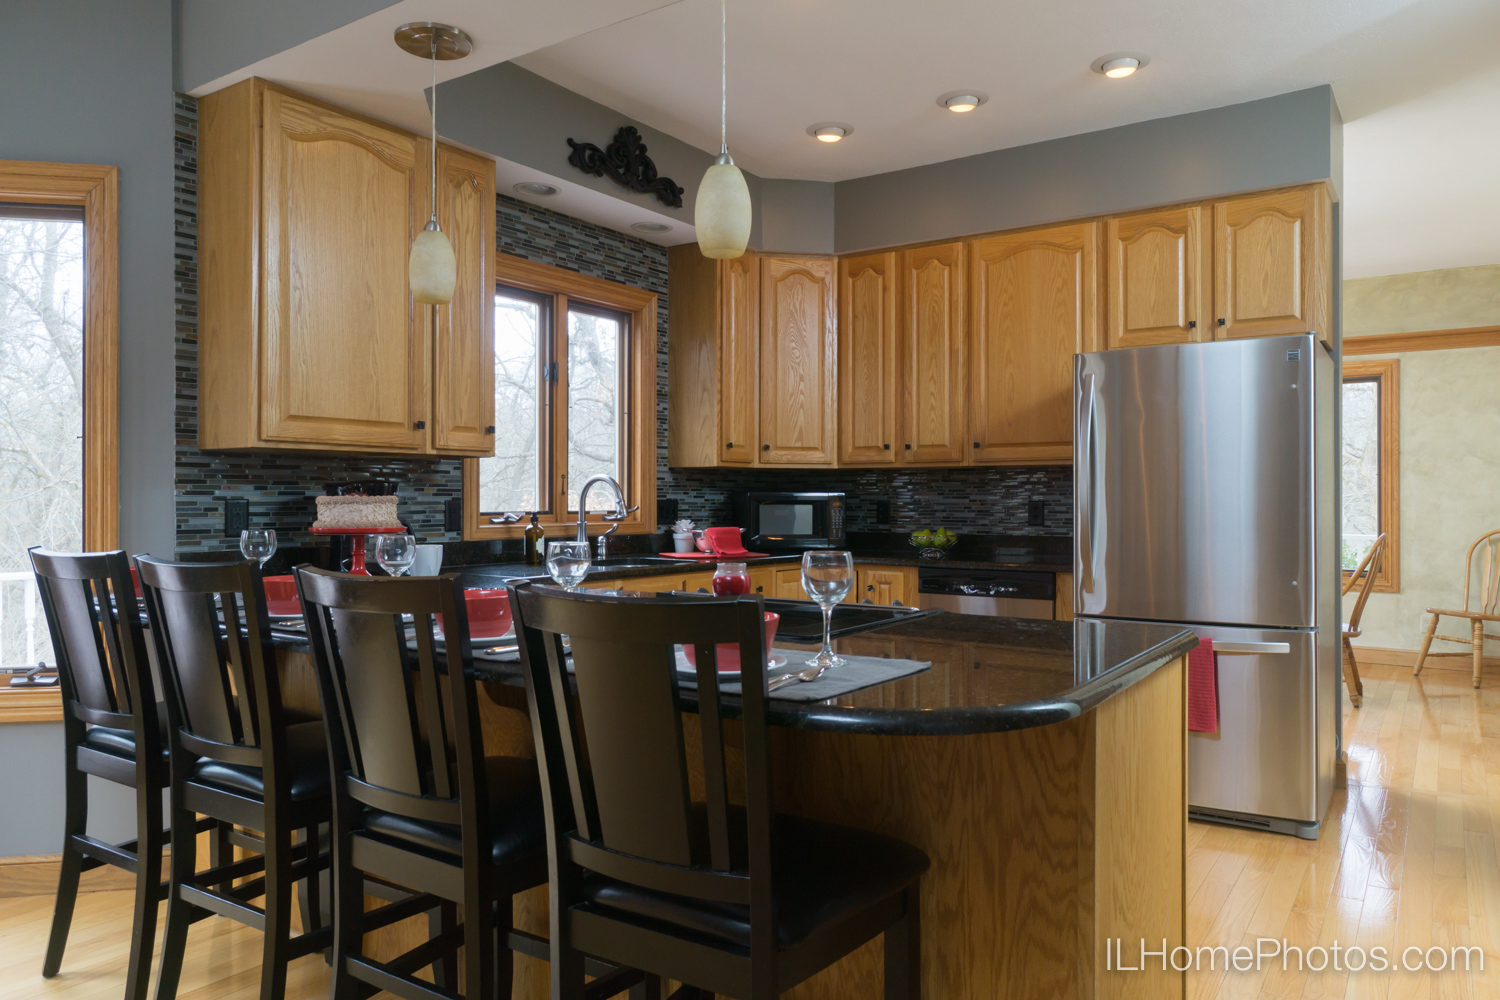 Interior kitchen photograph for real estate :: Illinois Home Photography by Michael Gowin, Lincoln, IL